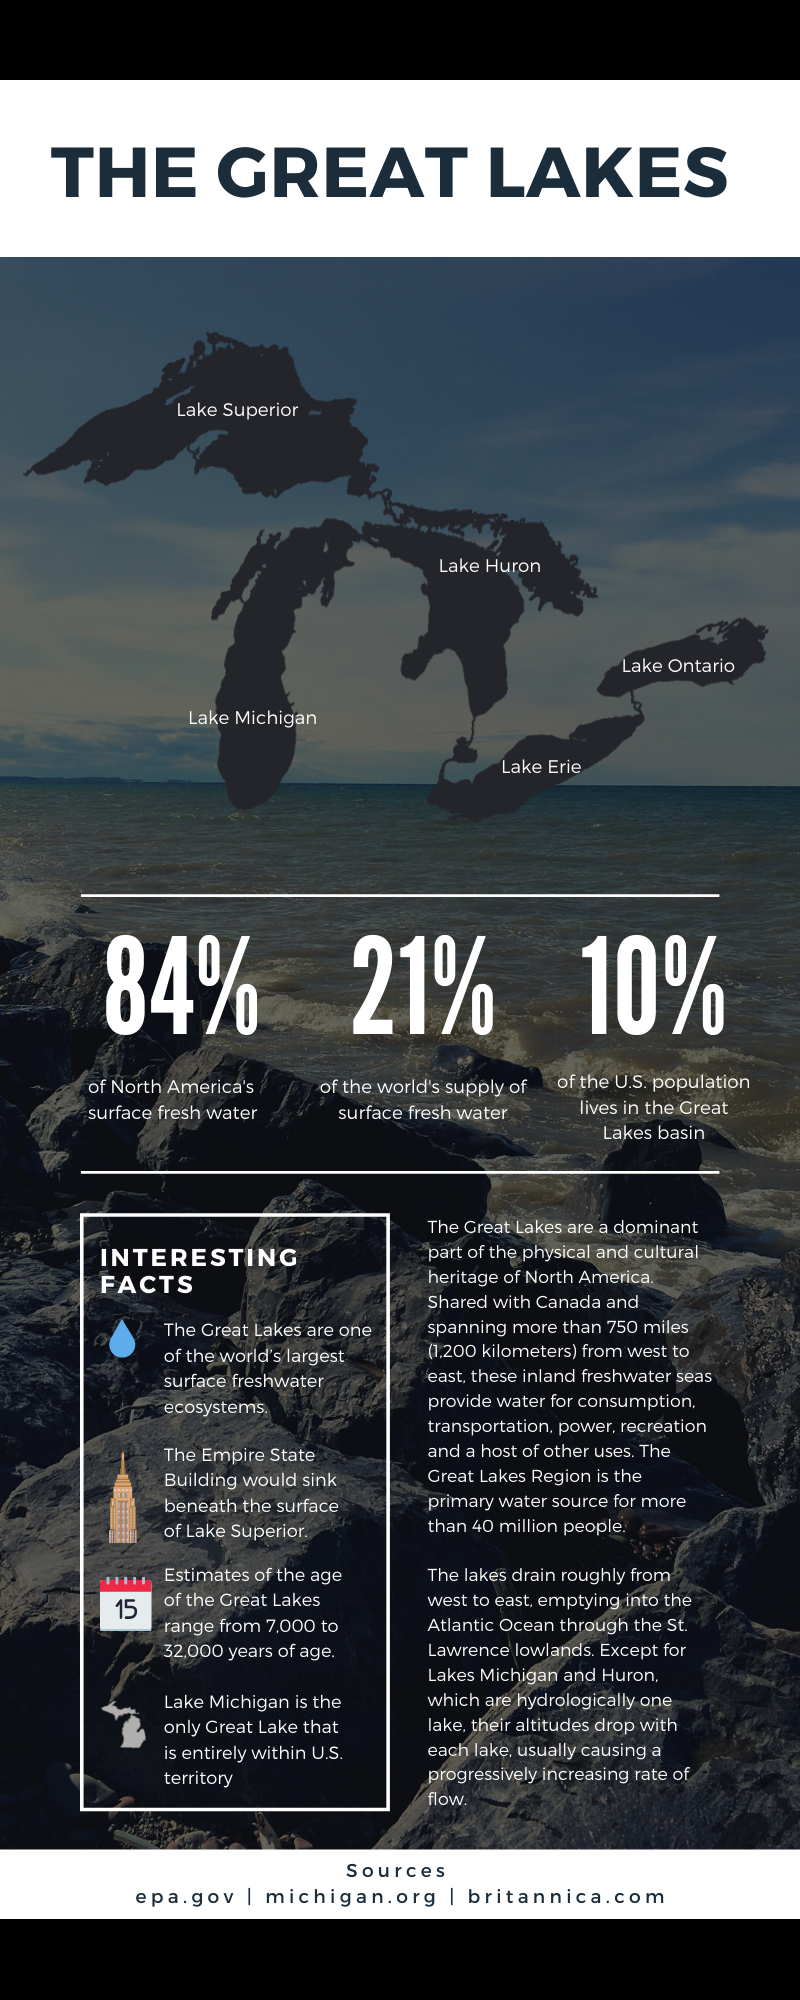 Great Lakes Infographic - facts and figures of the Great Lakes